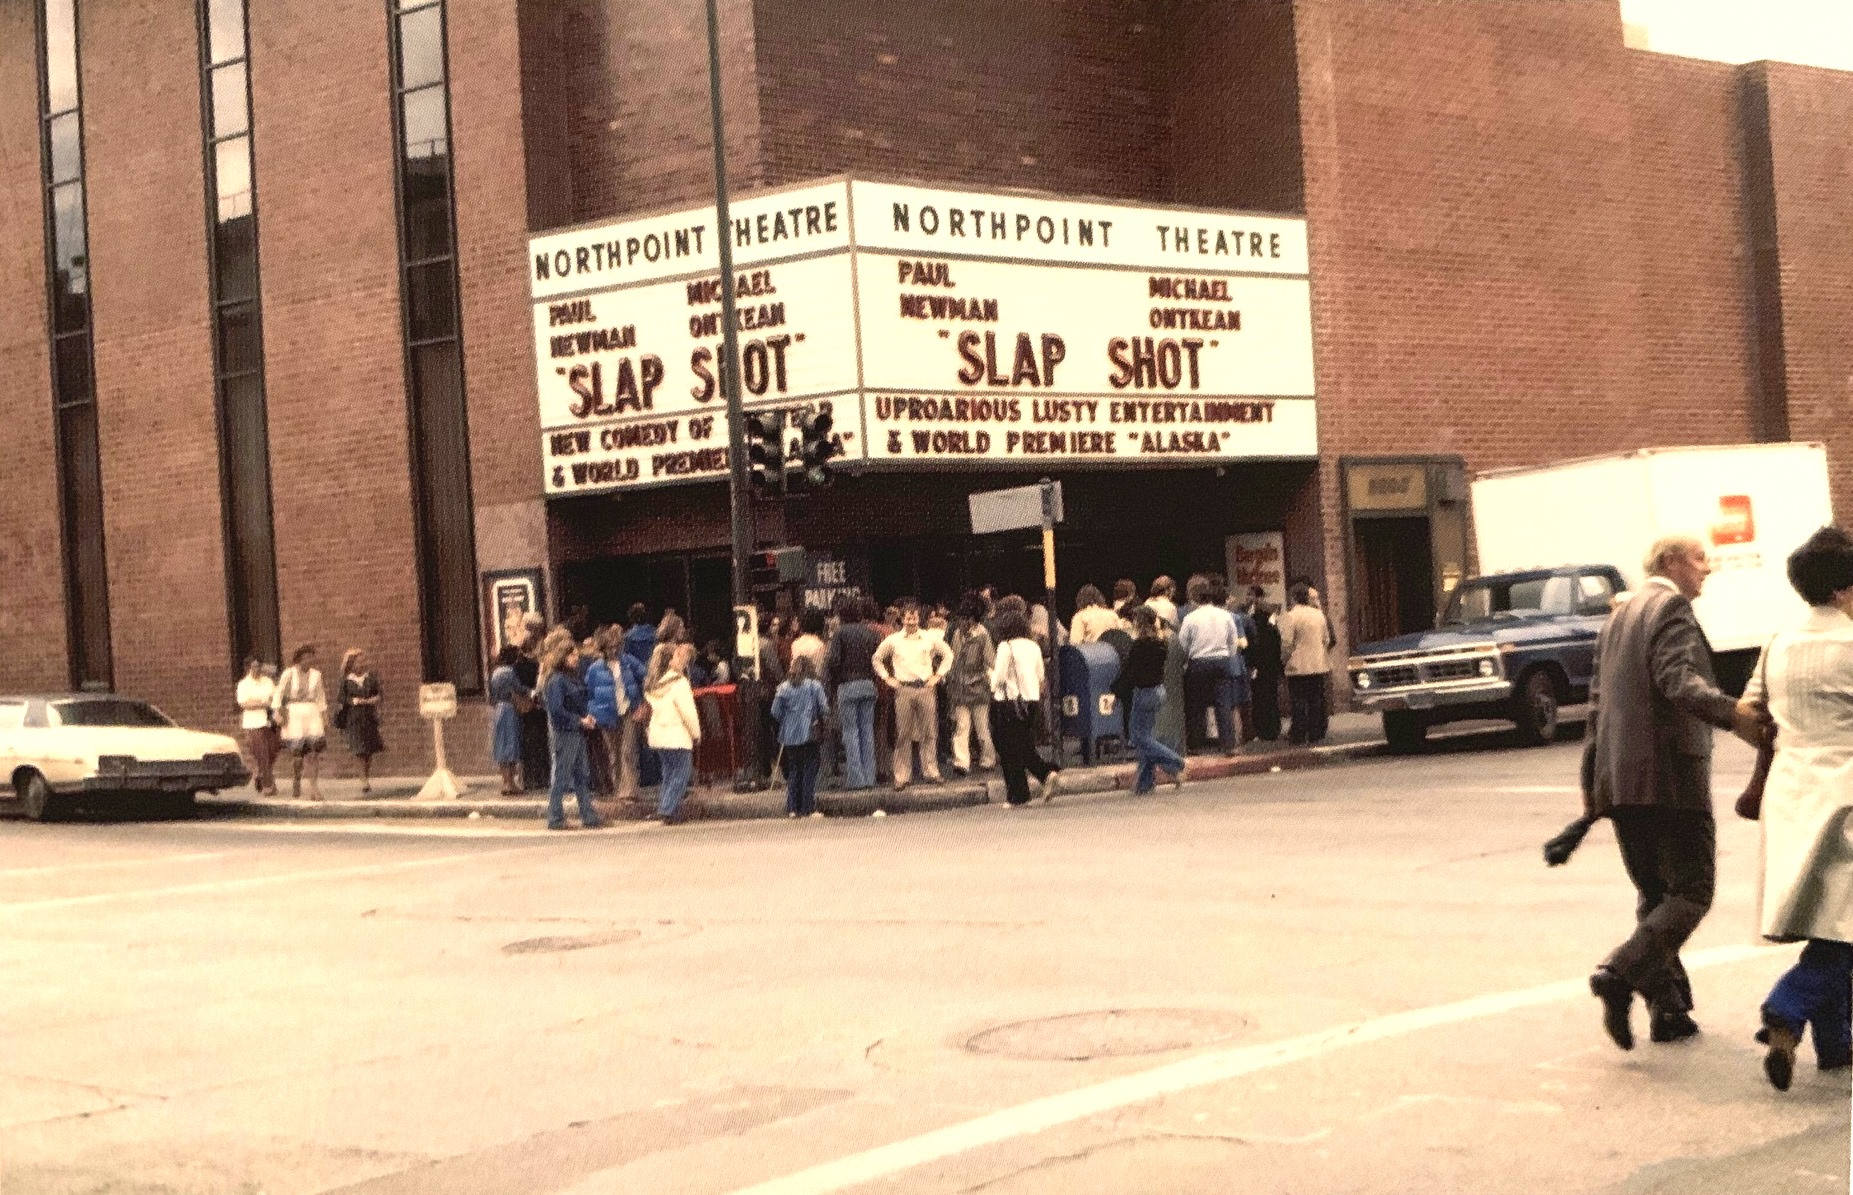 The first public preview of  Star Wars  at the Northpoint in San Francisco on May 1st. 1977, under the guise of  Alaska .